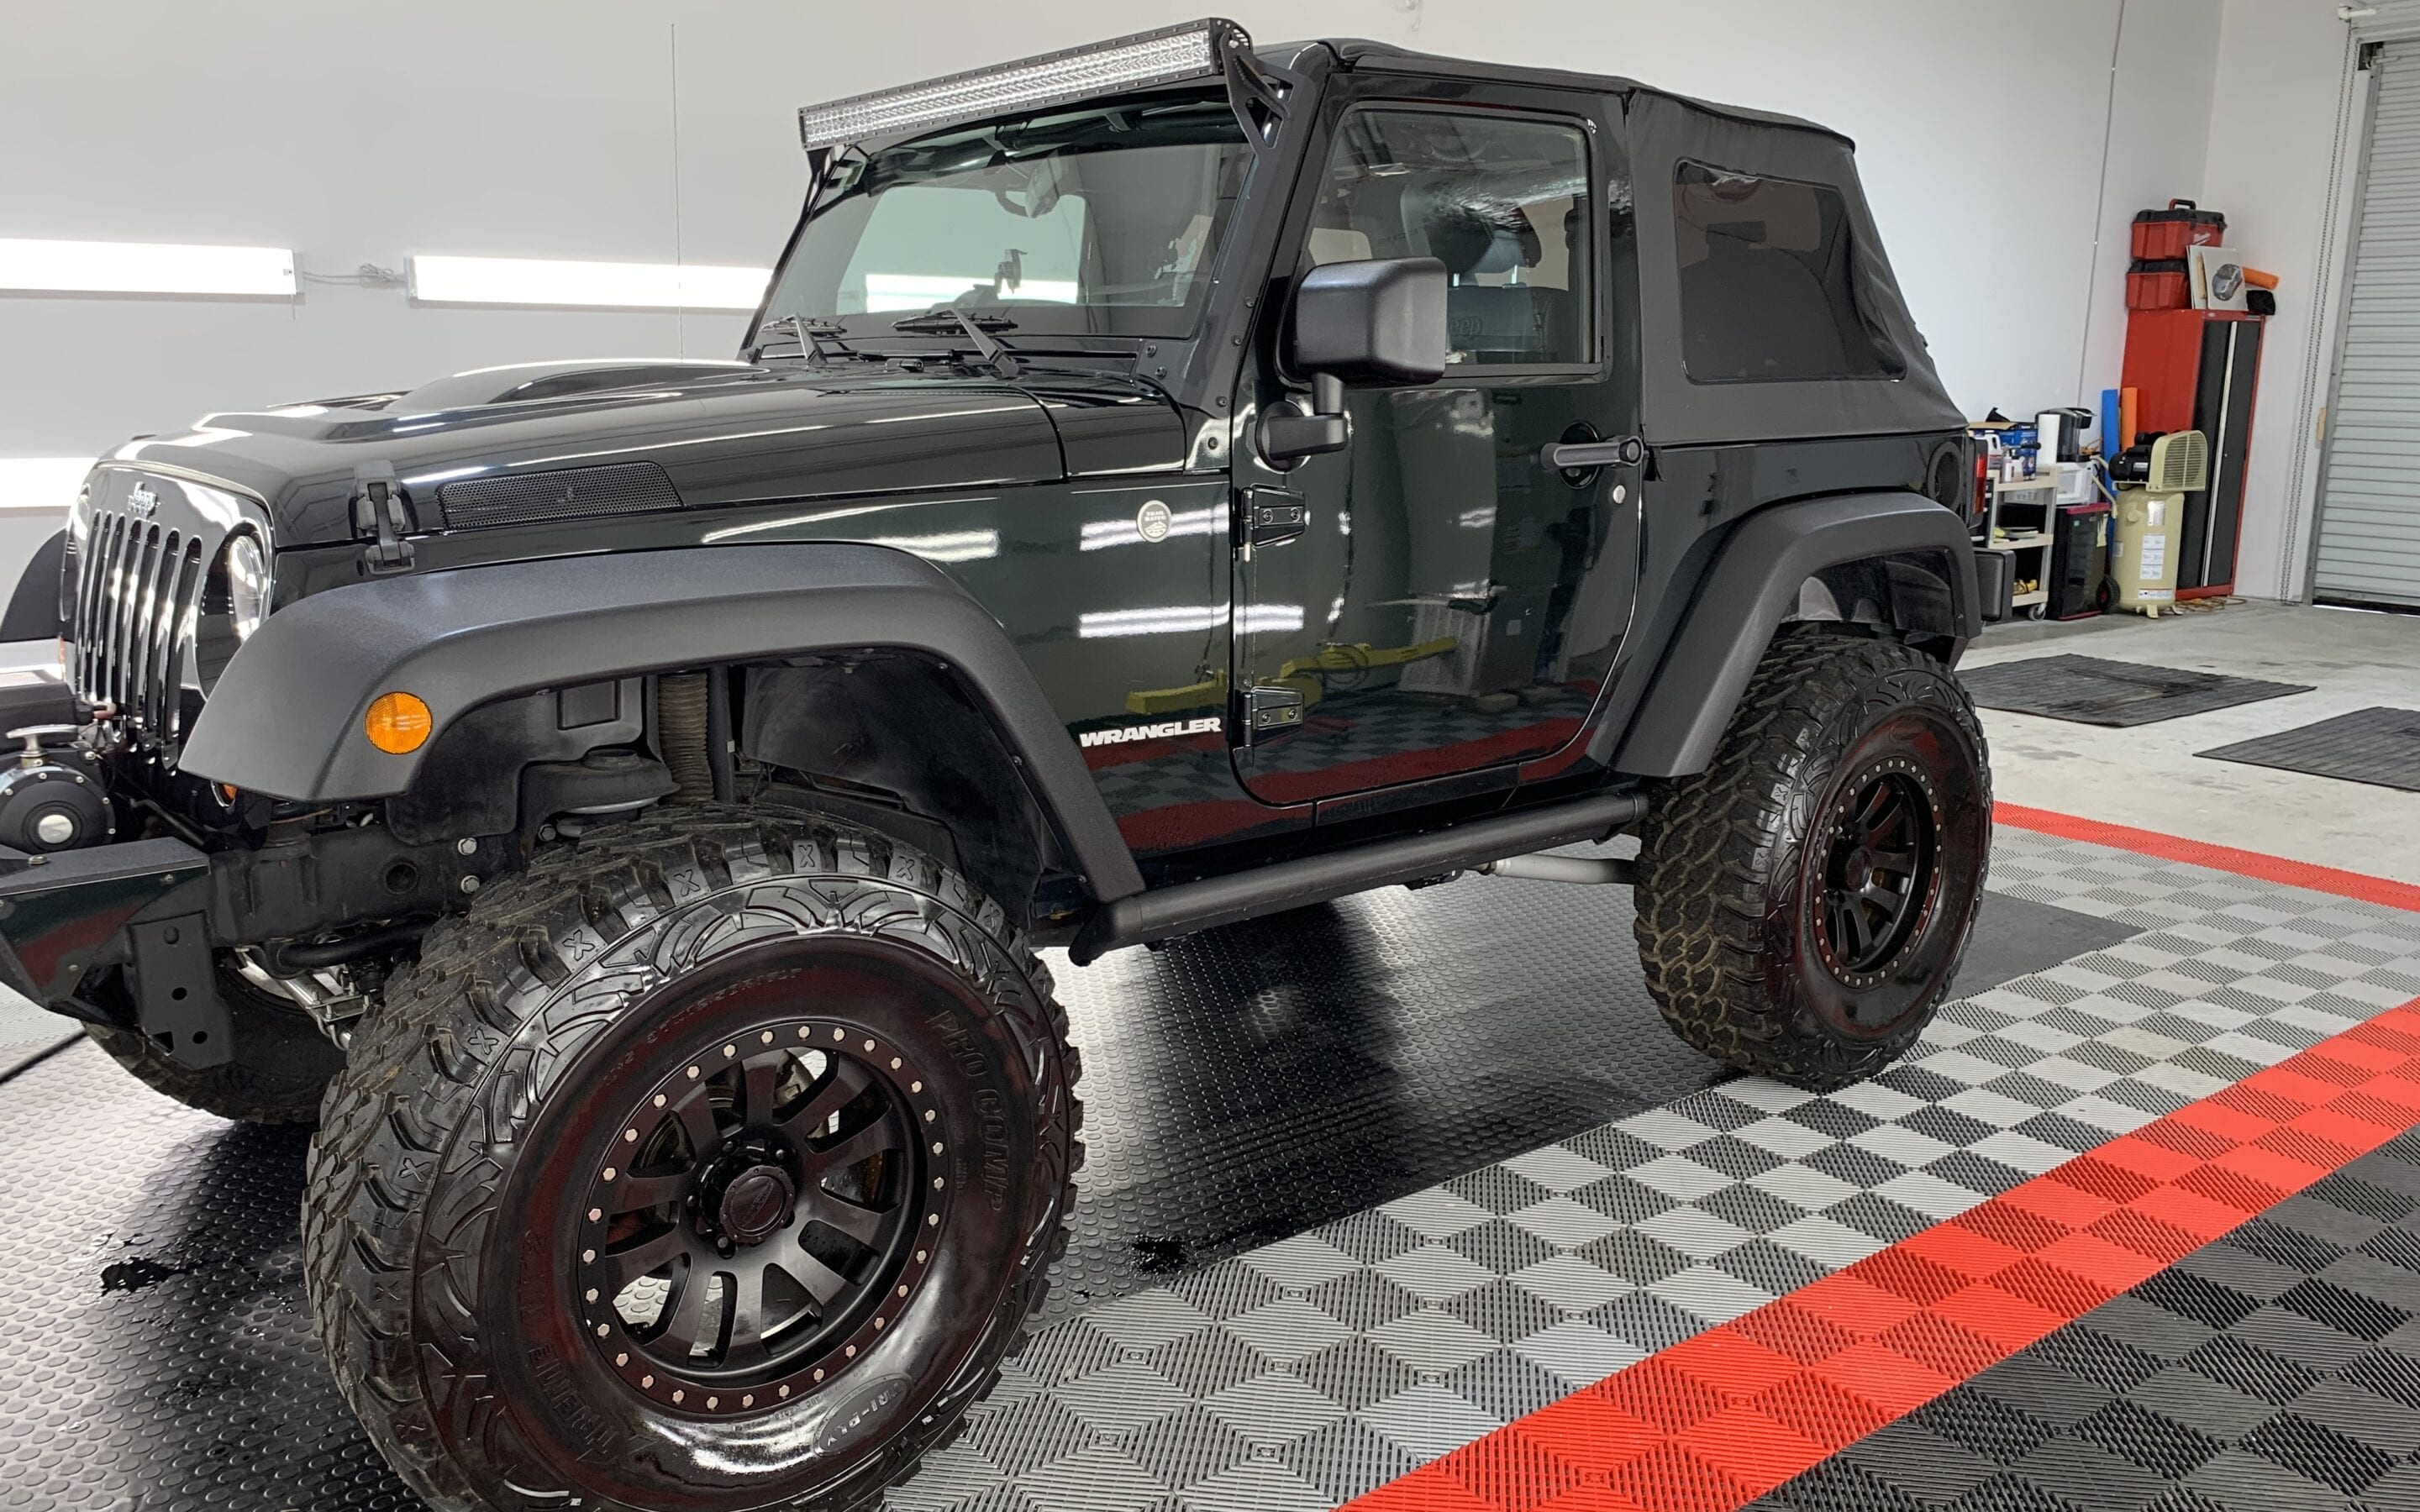 Photo of a Full Detail of a 2016 Jeep Wrangler